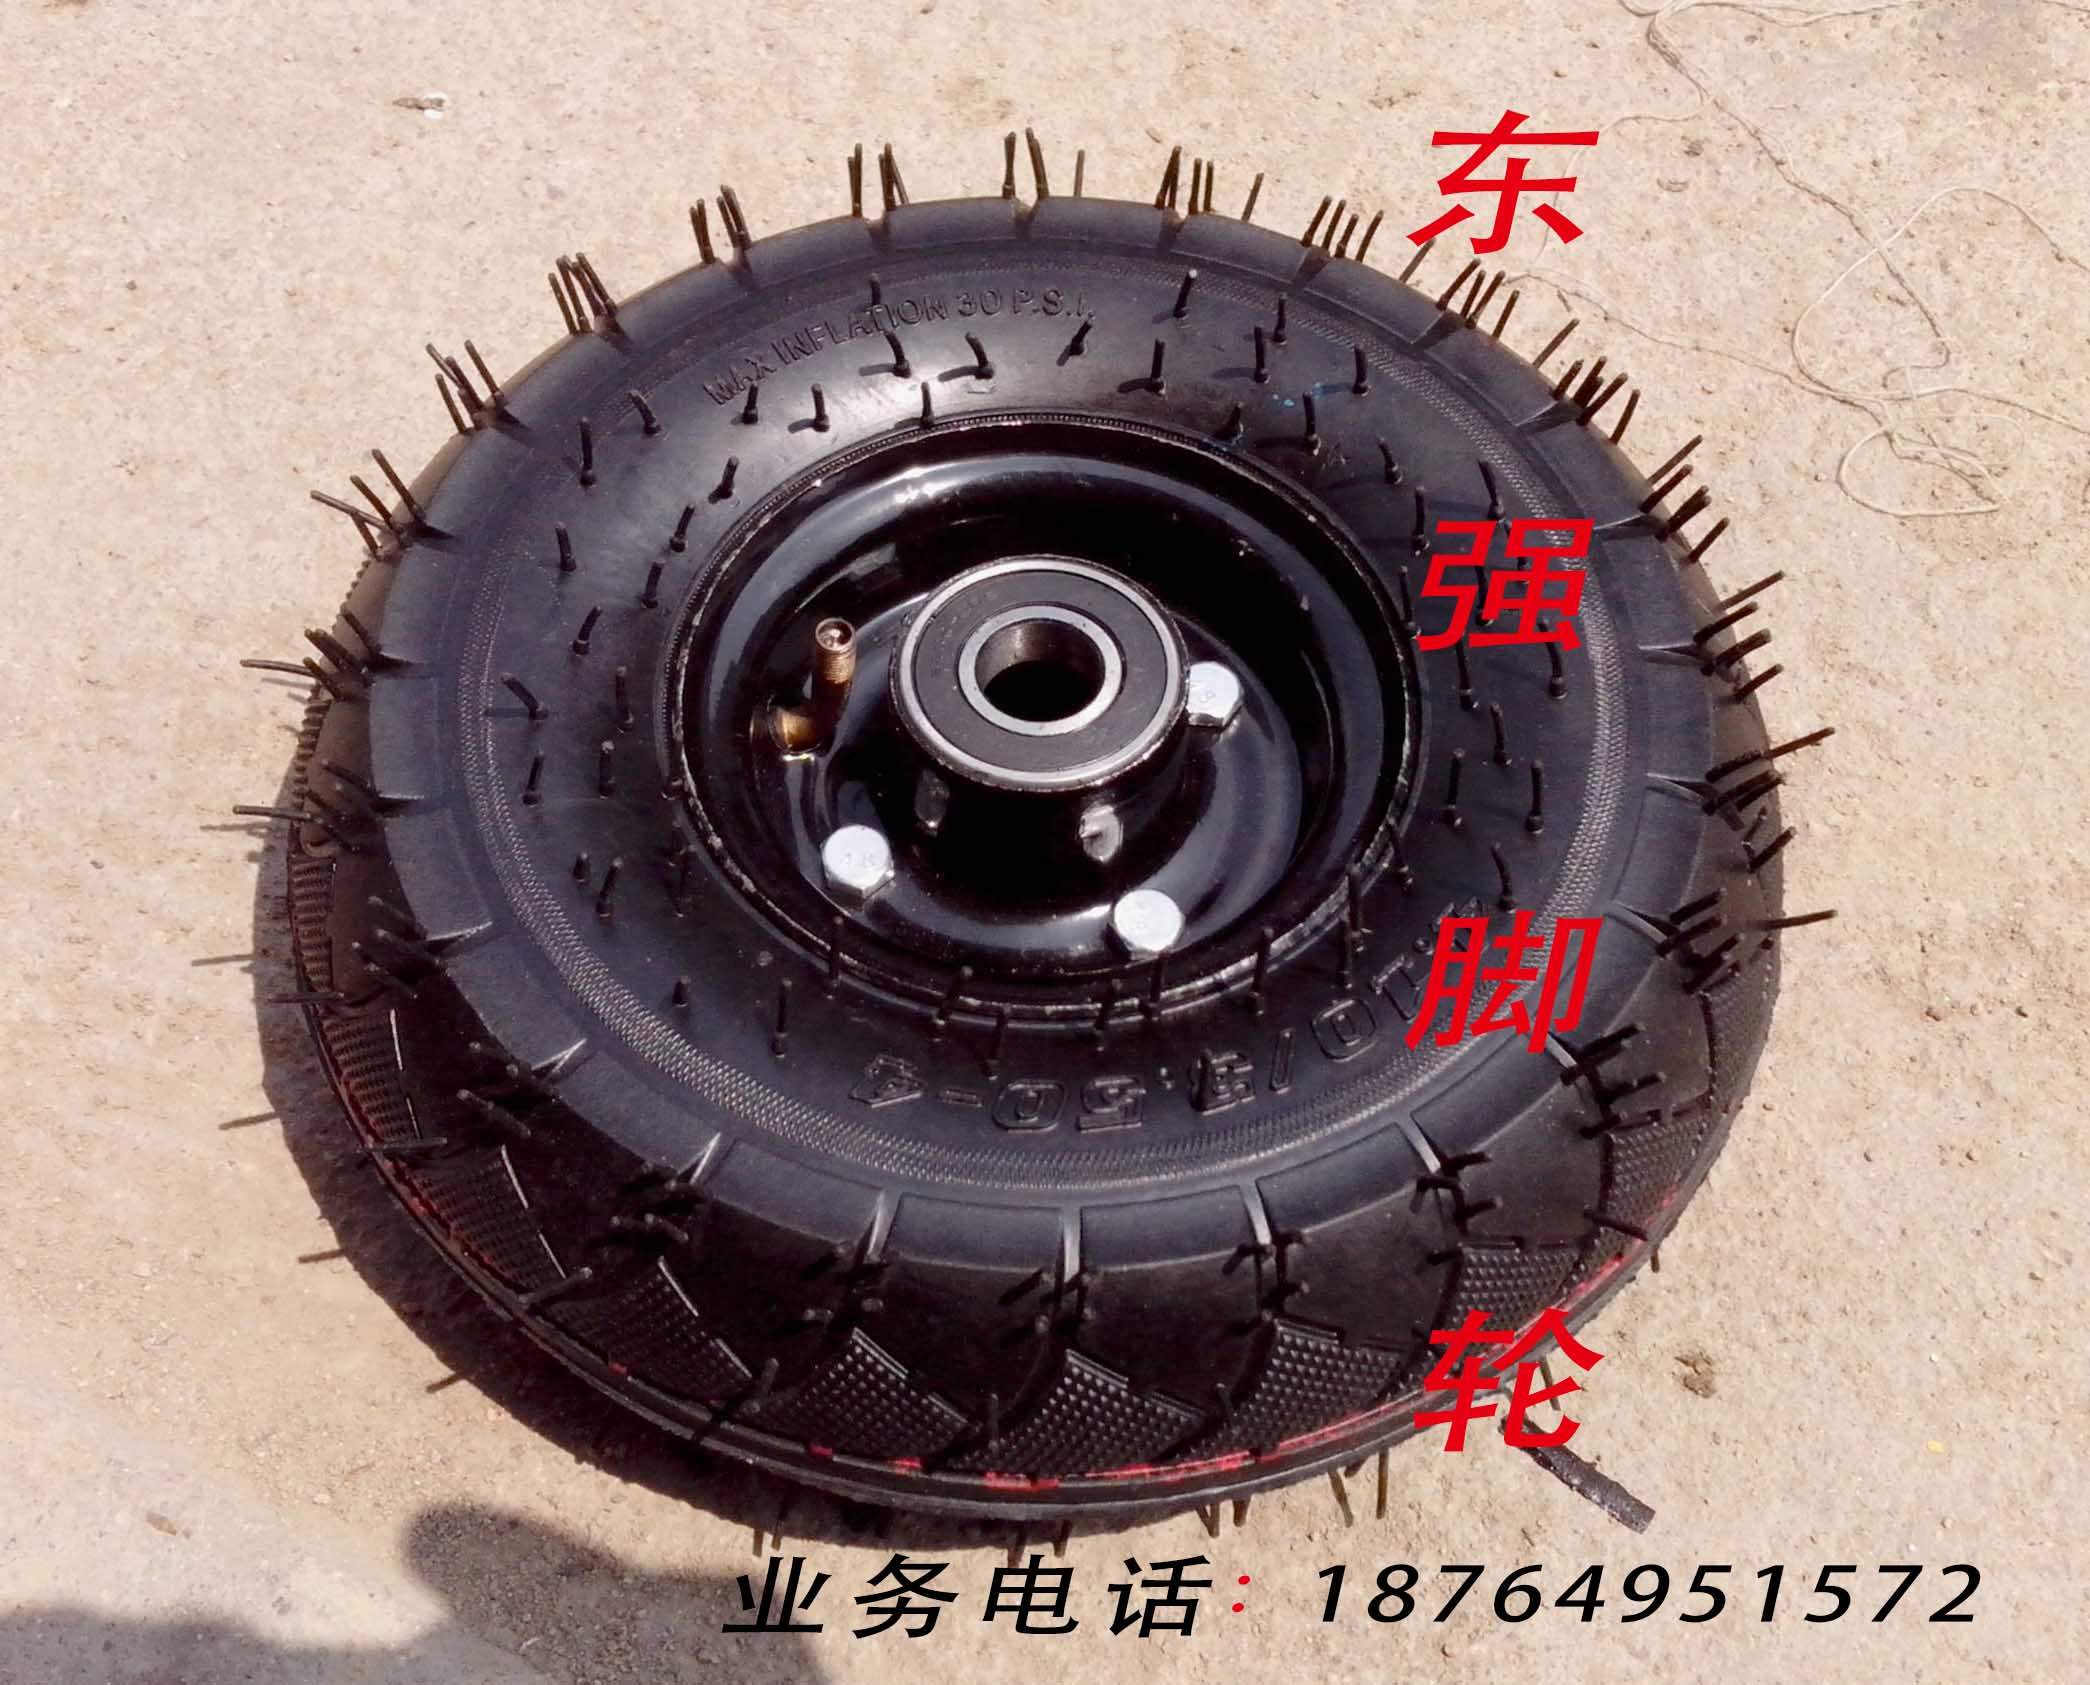 10 inch pneumatic wheels 4.103.504 factory direct thick rubber inflatable tire trolley wheel casters<br><br>Aliexpress